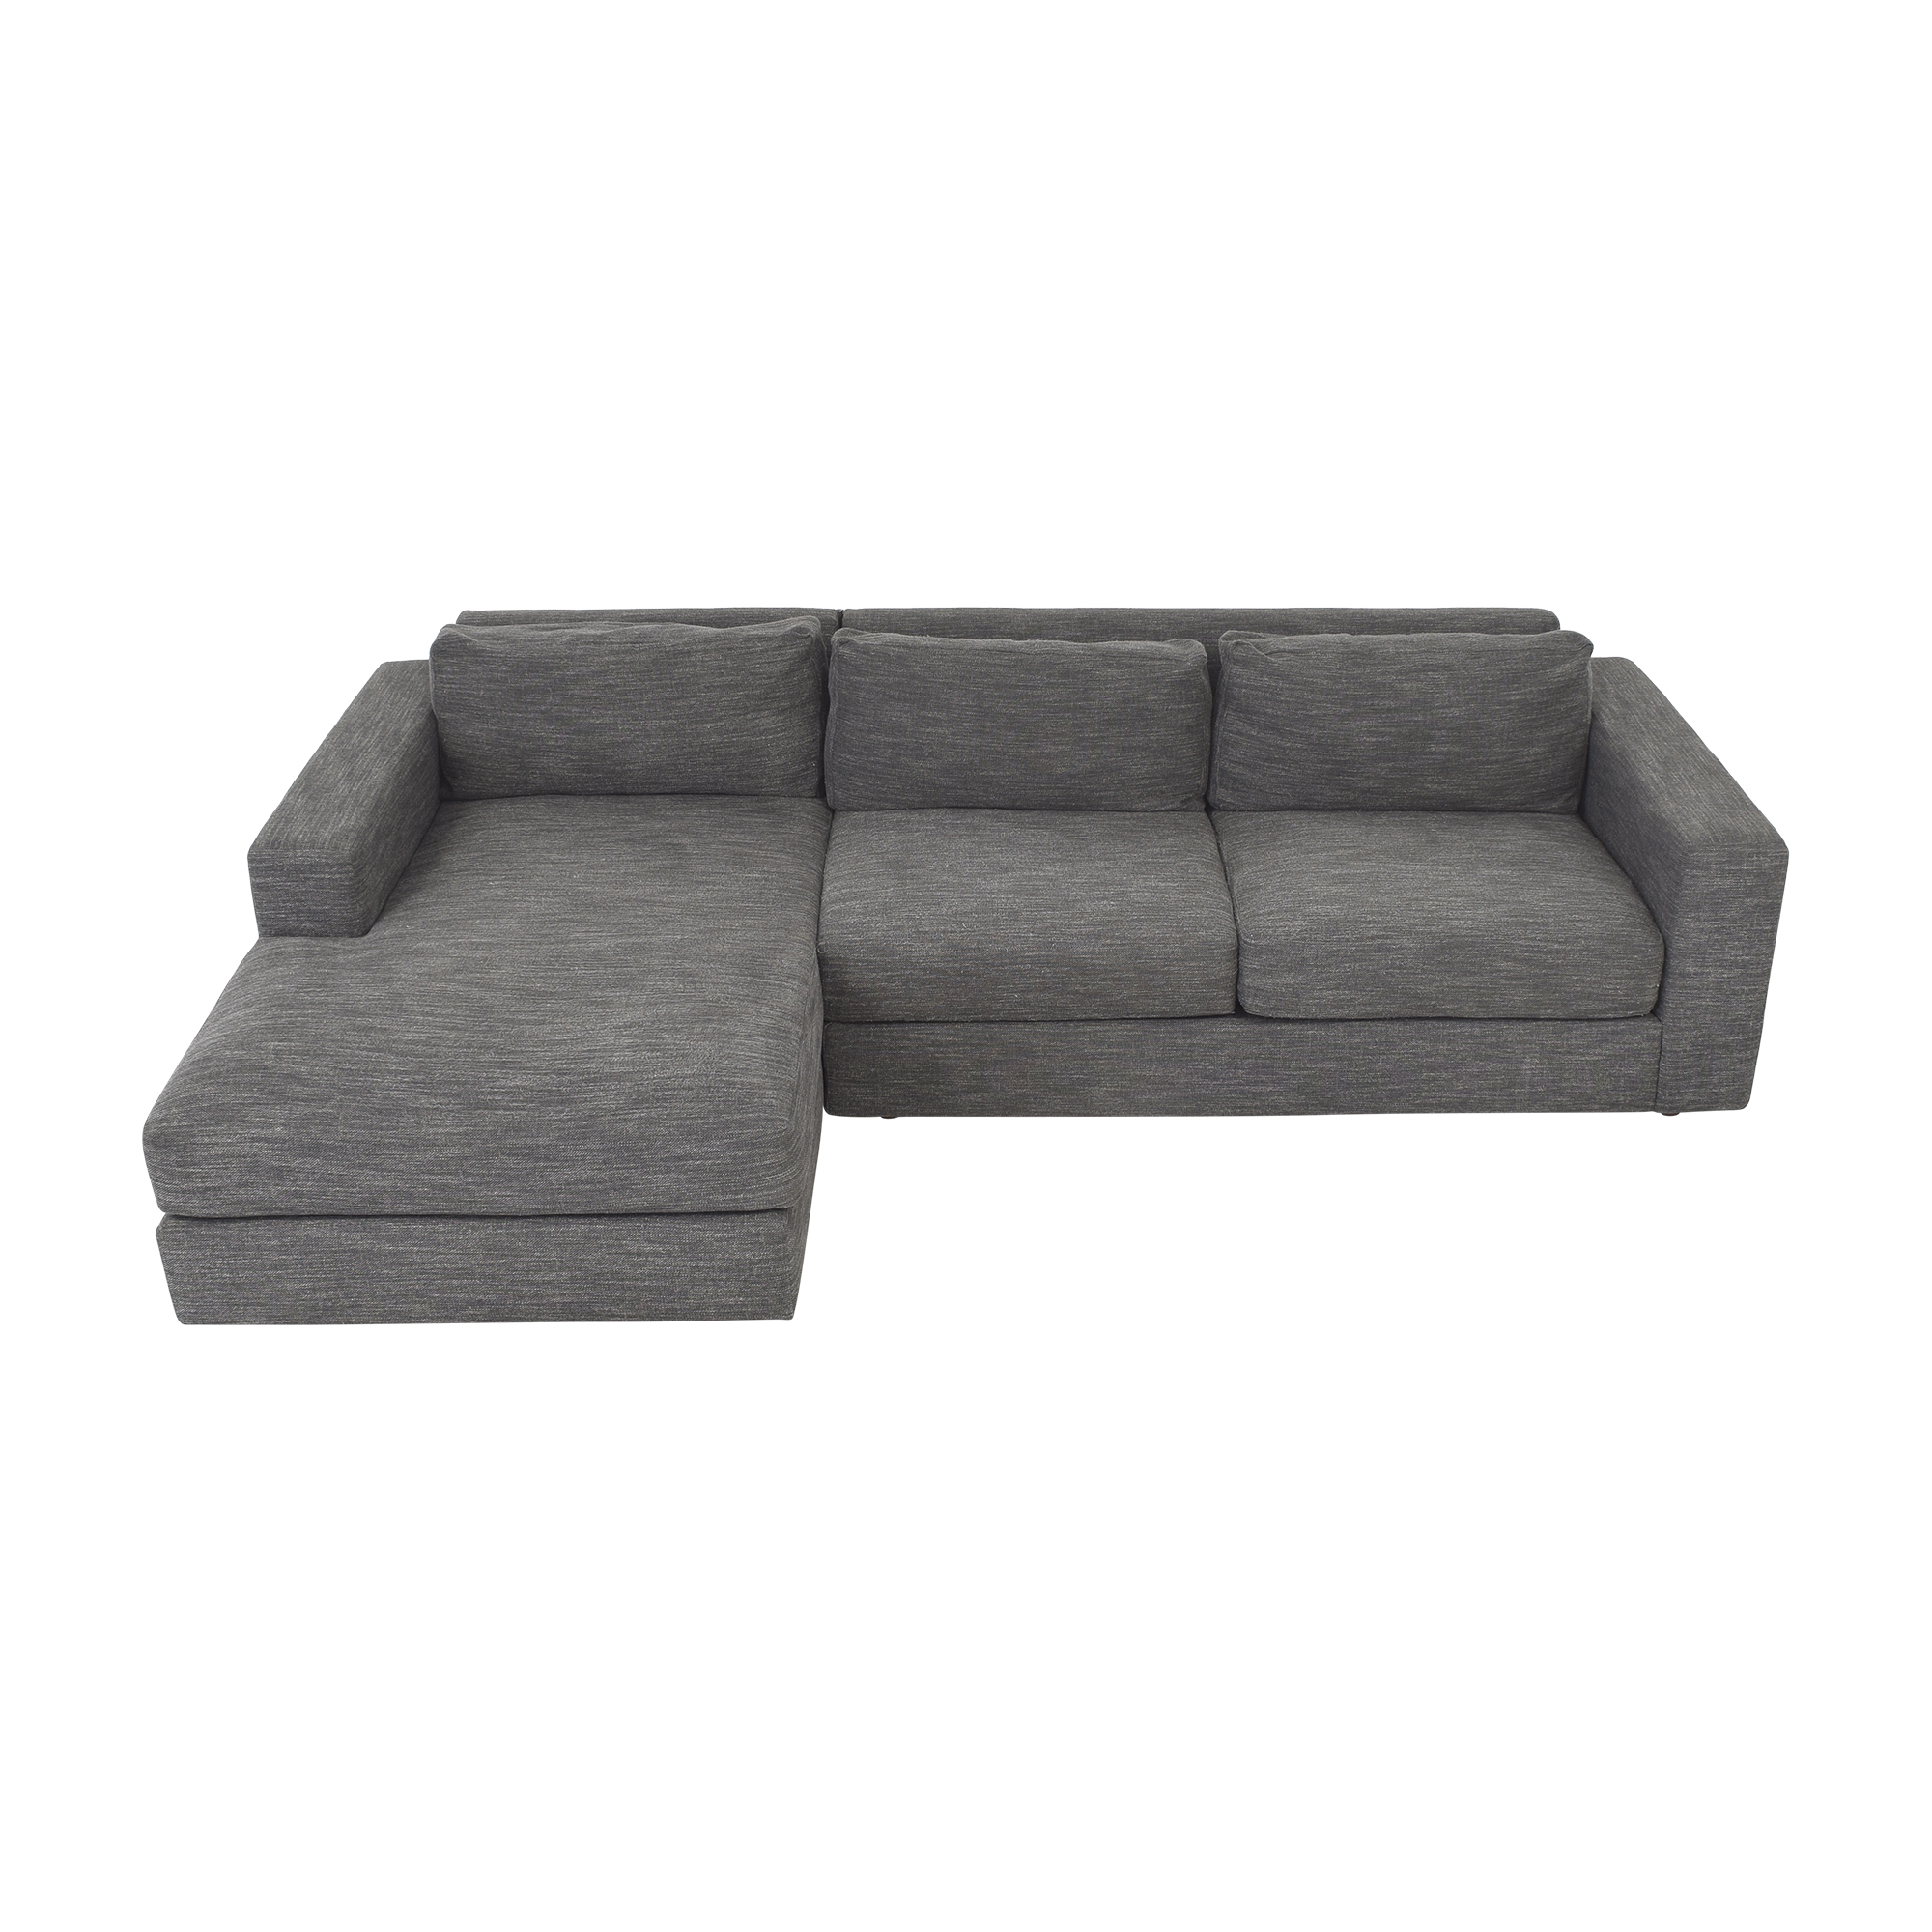 54% Off – West Elm West Elm Urban 2 Piece Chaise Sectional Intended For Elm Grande Ii 2 Piece Sectionals (View 11 of 15)